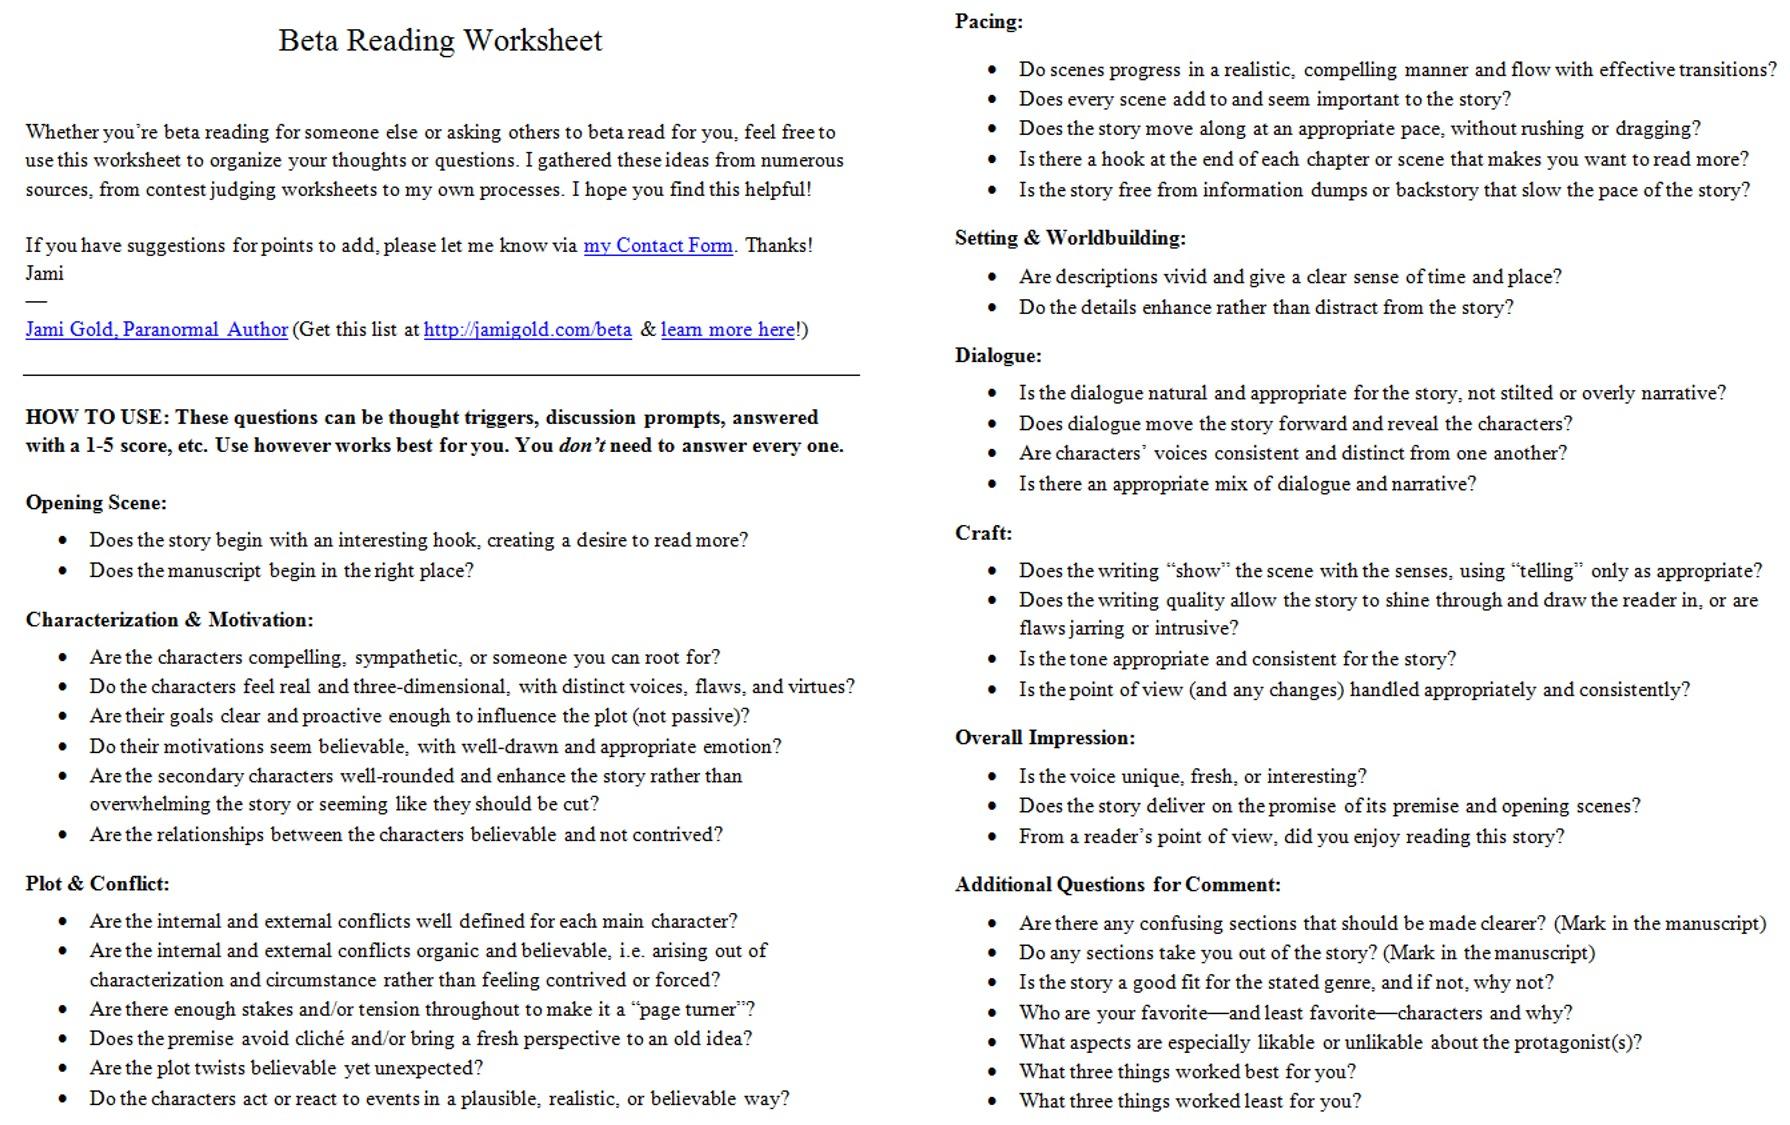 Weirdmailus  Marvellous Worksheets For Writers  Jami Gold Paranormal Author With Exciting Screen Shot Of The Twopage Beta Reading Worksheet With Beauteous Possessive Pronouns Worksheets For Kids Also Verbs Worksheets For St Grade In Addition Animals Worksheets For Kids And Cutting Worksheets For Fine Motor Skills As Well As Free Paraphrasing Worksheets Additionally Worksheet For Addition From Jamigoldcom With Weirdmailus  Exciting Worksheets For Writers  Jami Gold Paranormal Author With Beauteous Screen Shot Of The Twopage Beta Reading Worksheet And Marvellous Possessive Pronouns Worksheets For Kids Also Verbs Worksheets For St Grade In Addition Animals Worksheets For Kids From Jamigoldcom